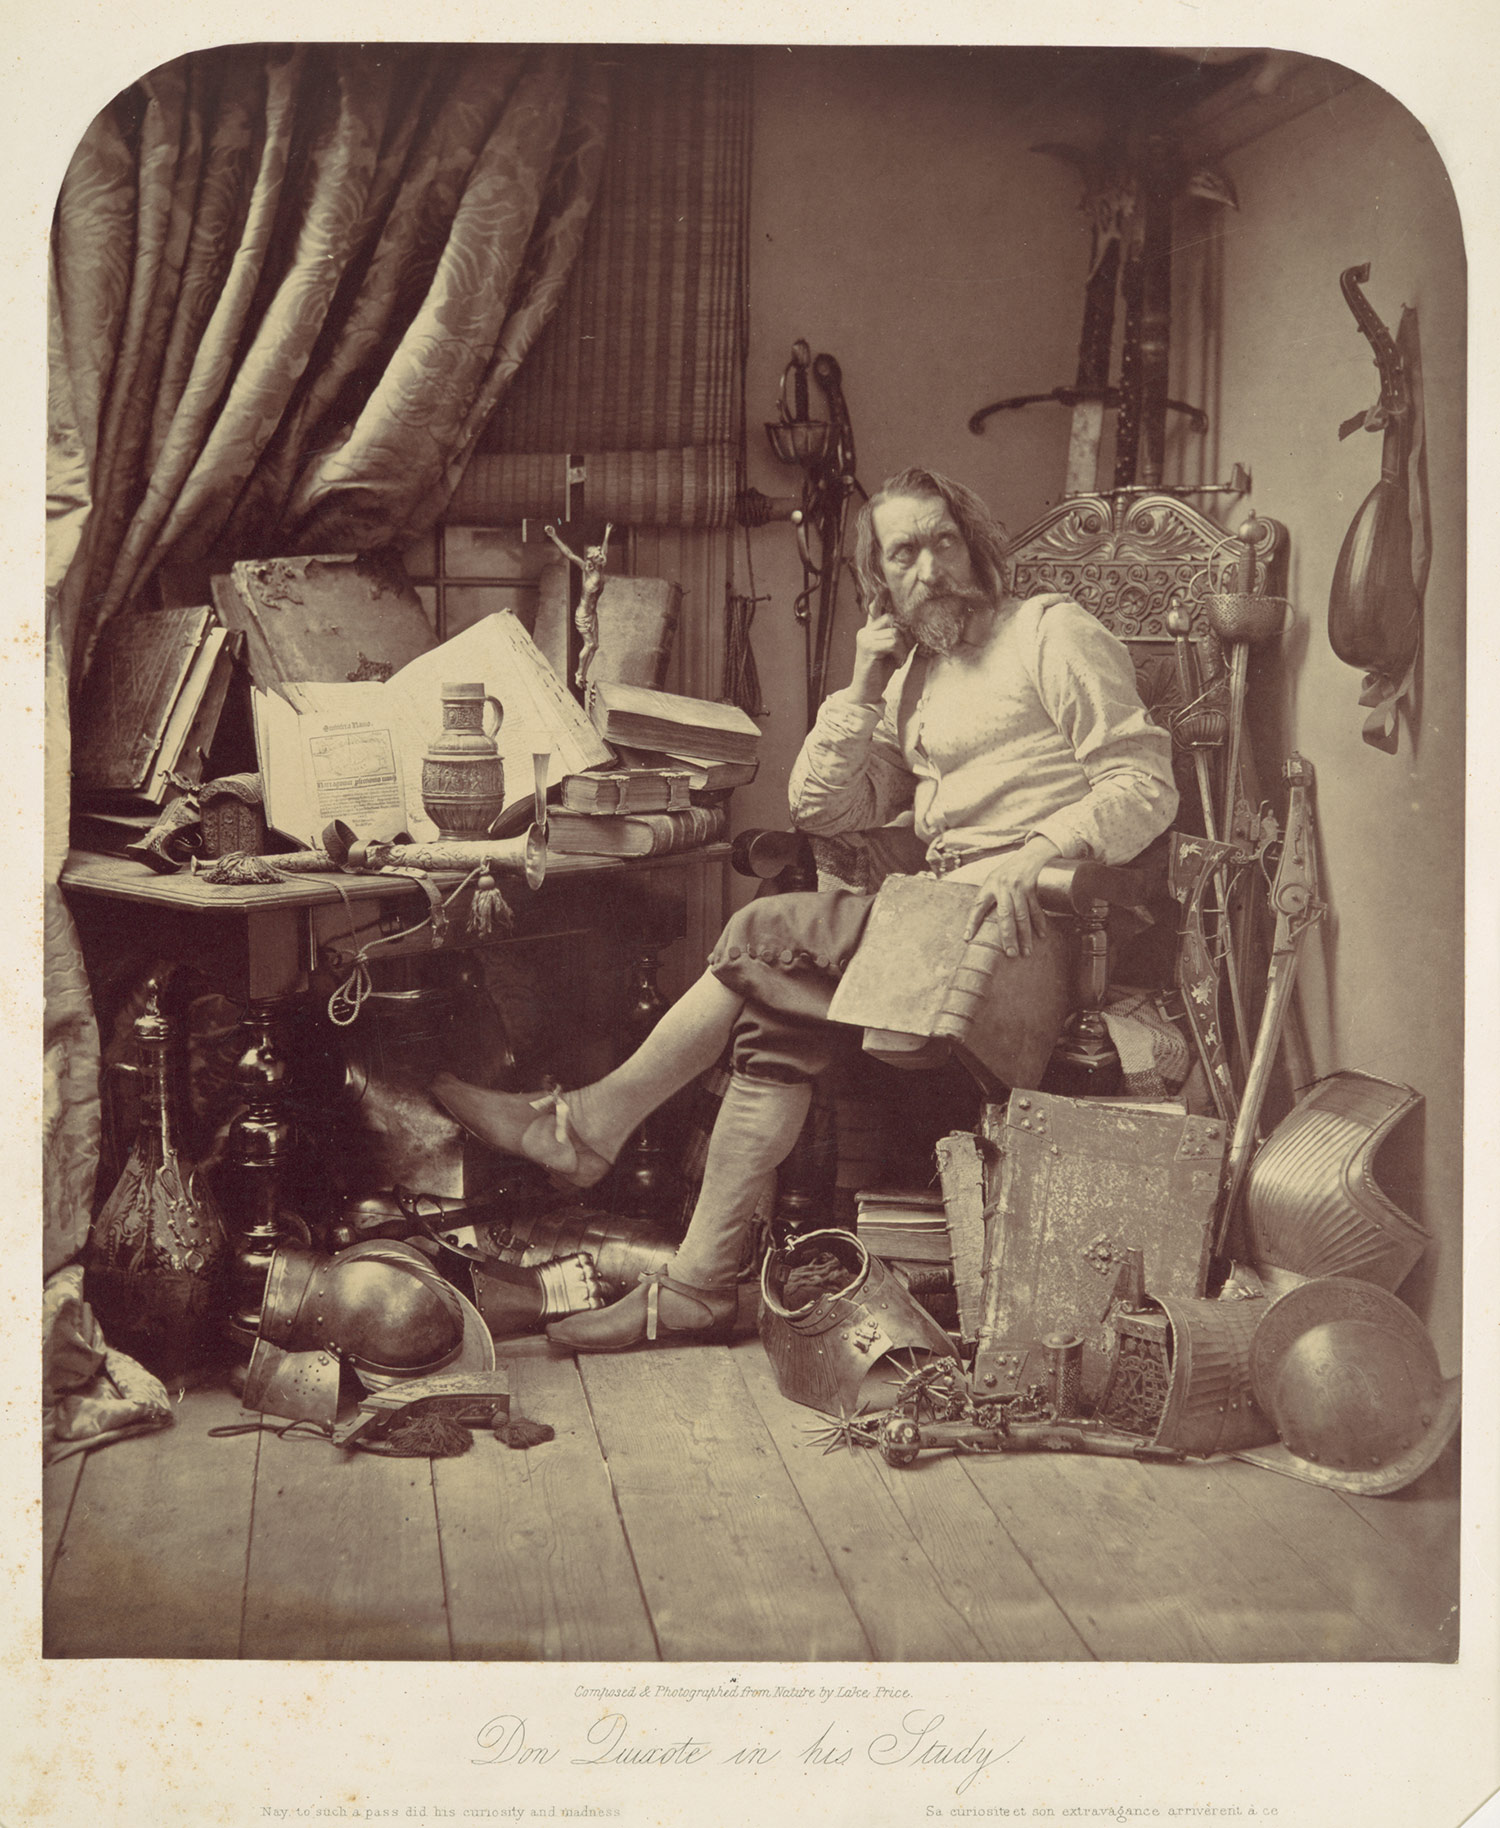 Don Quixote in His Study, W.L. Price (1857)